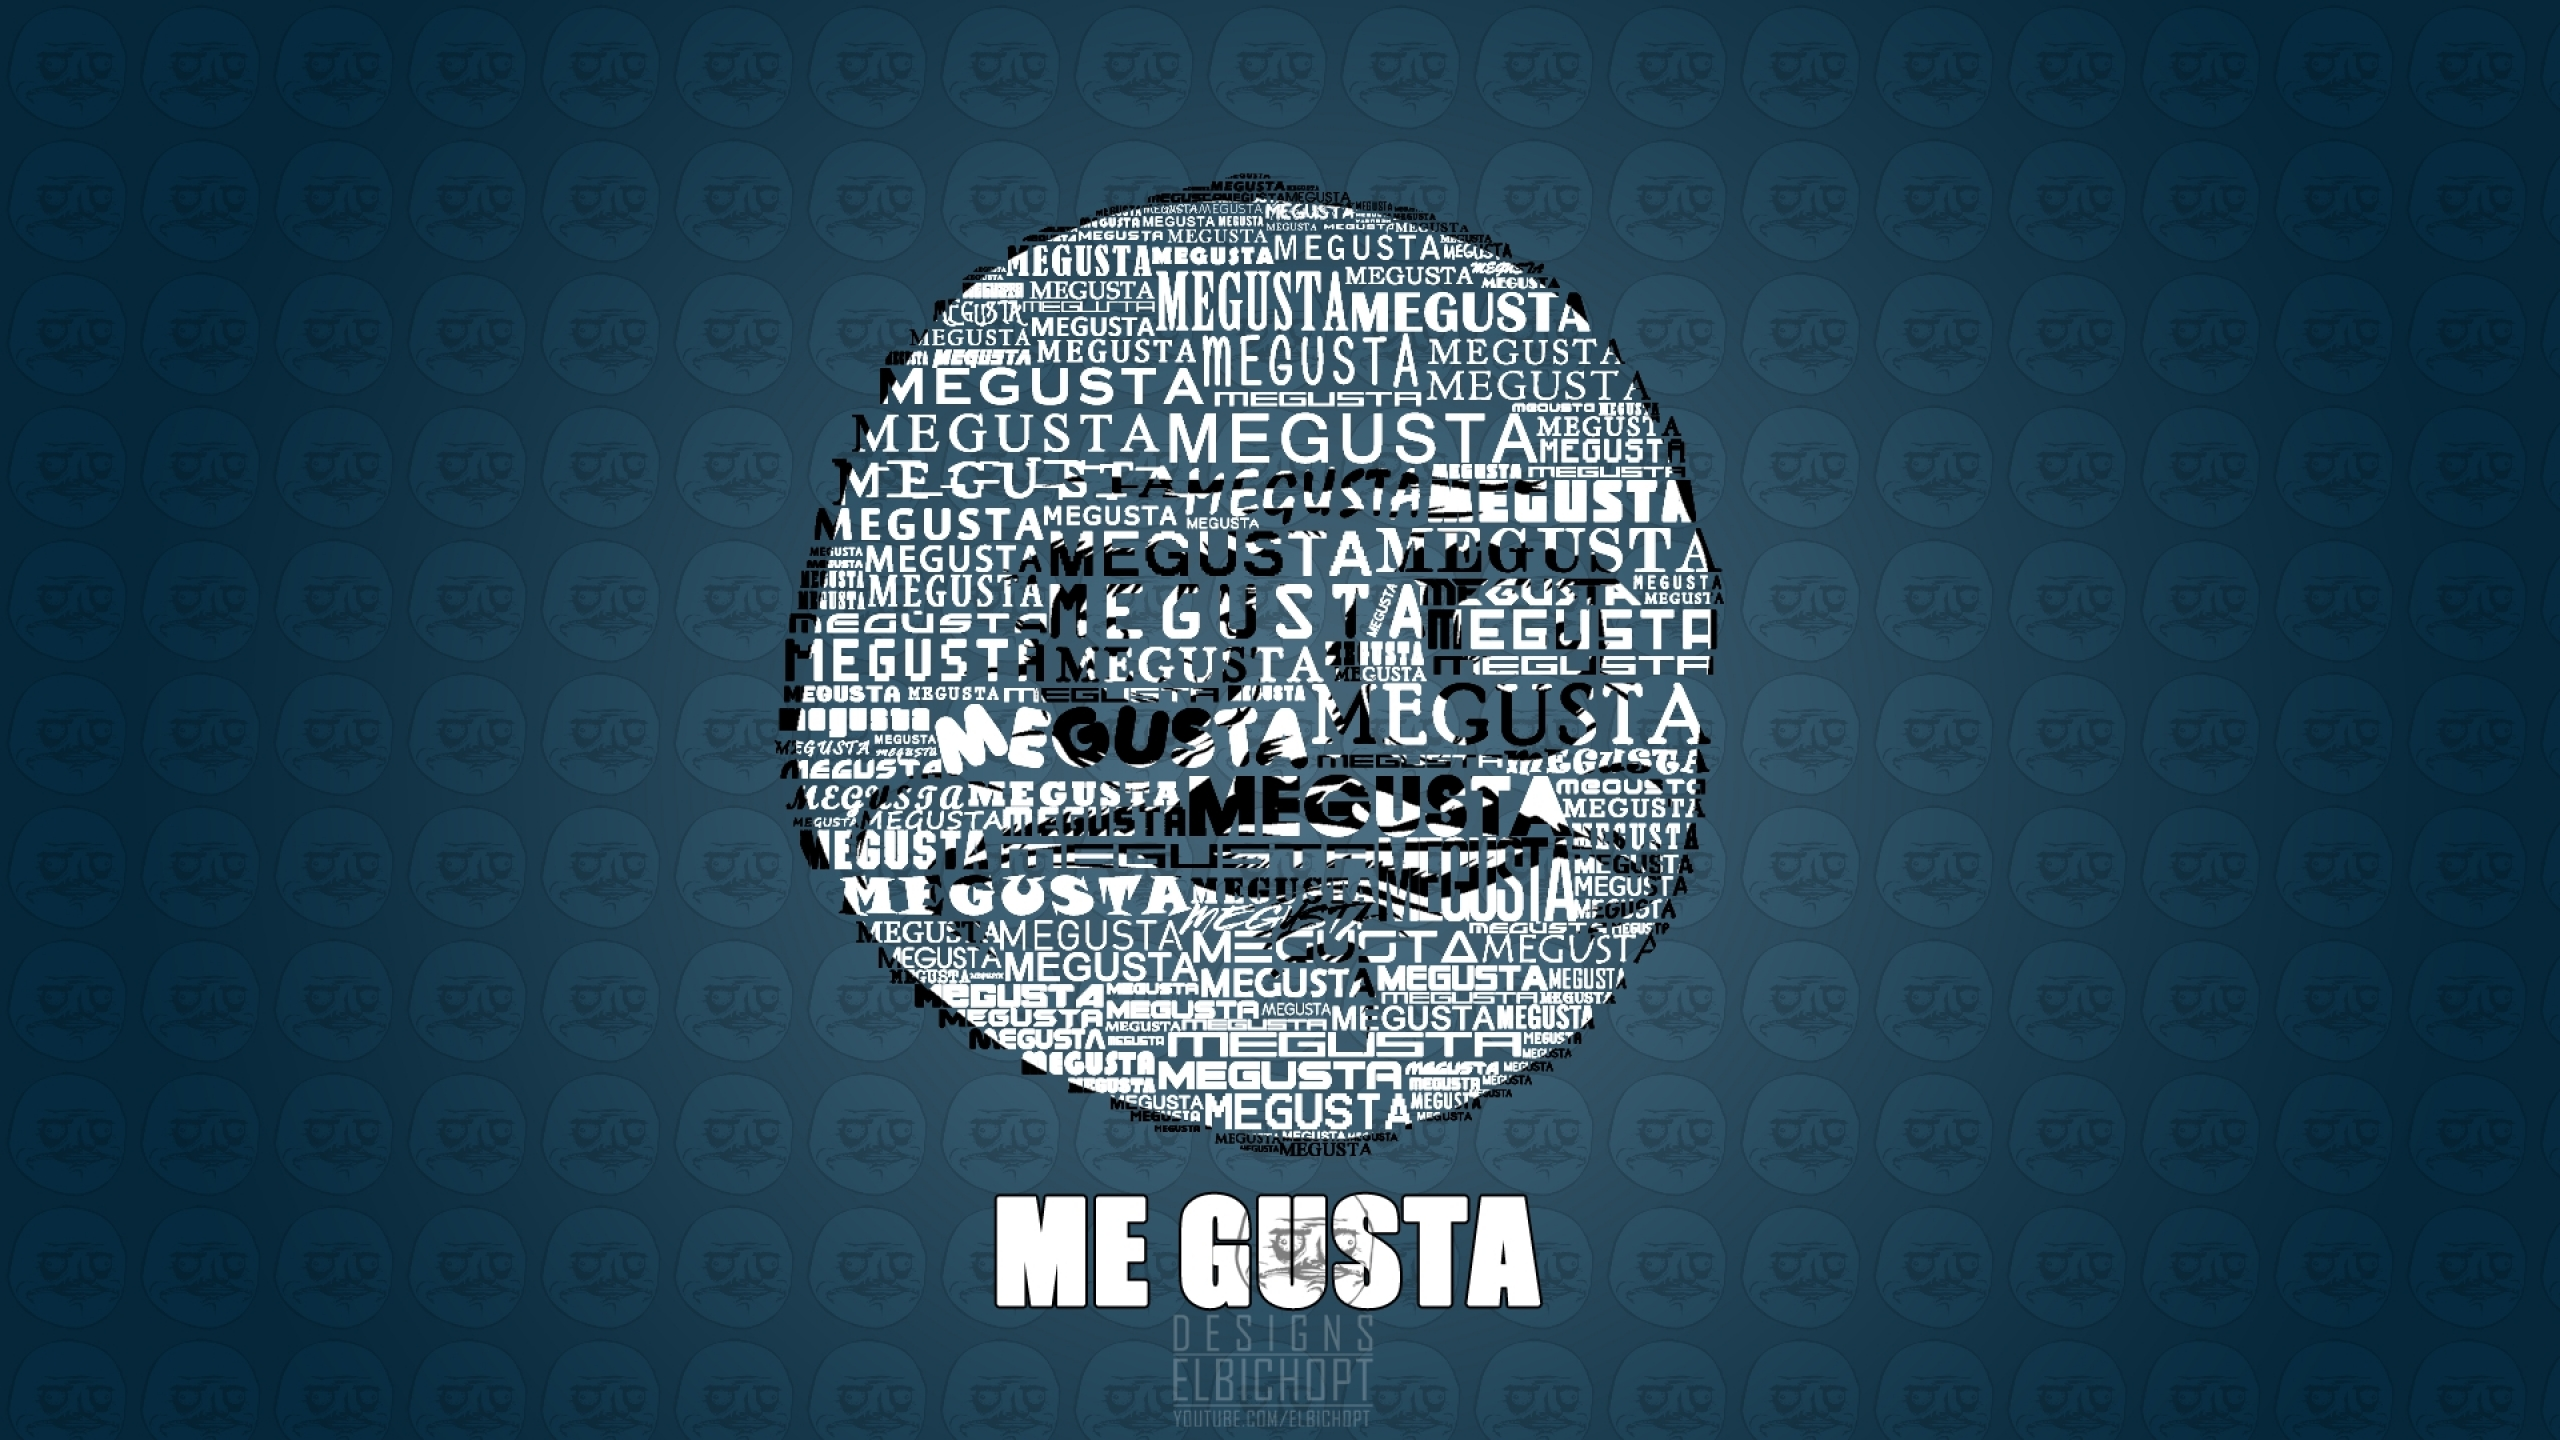 meme me gusta blue background 1920x1080 wallpaper Wallpaper 2560x1440